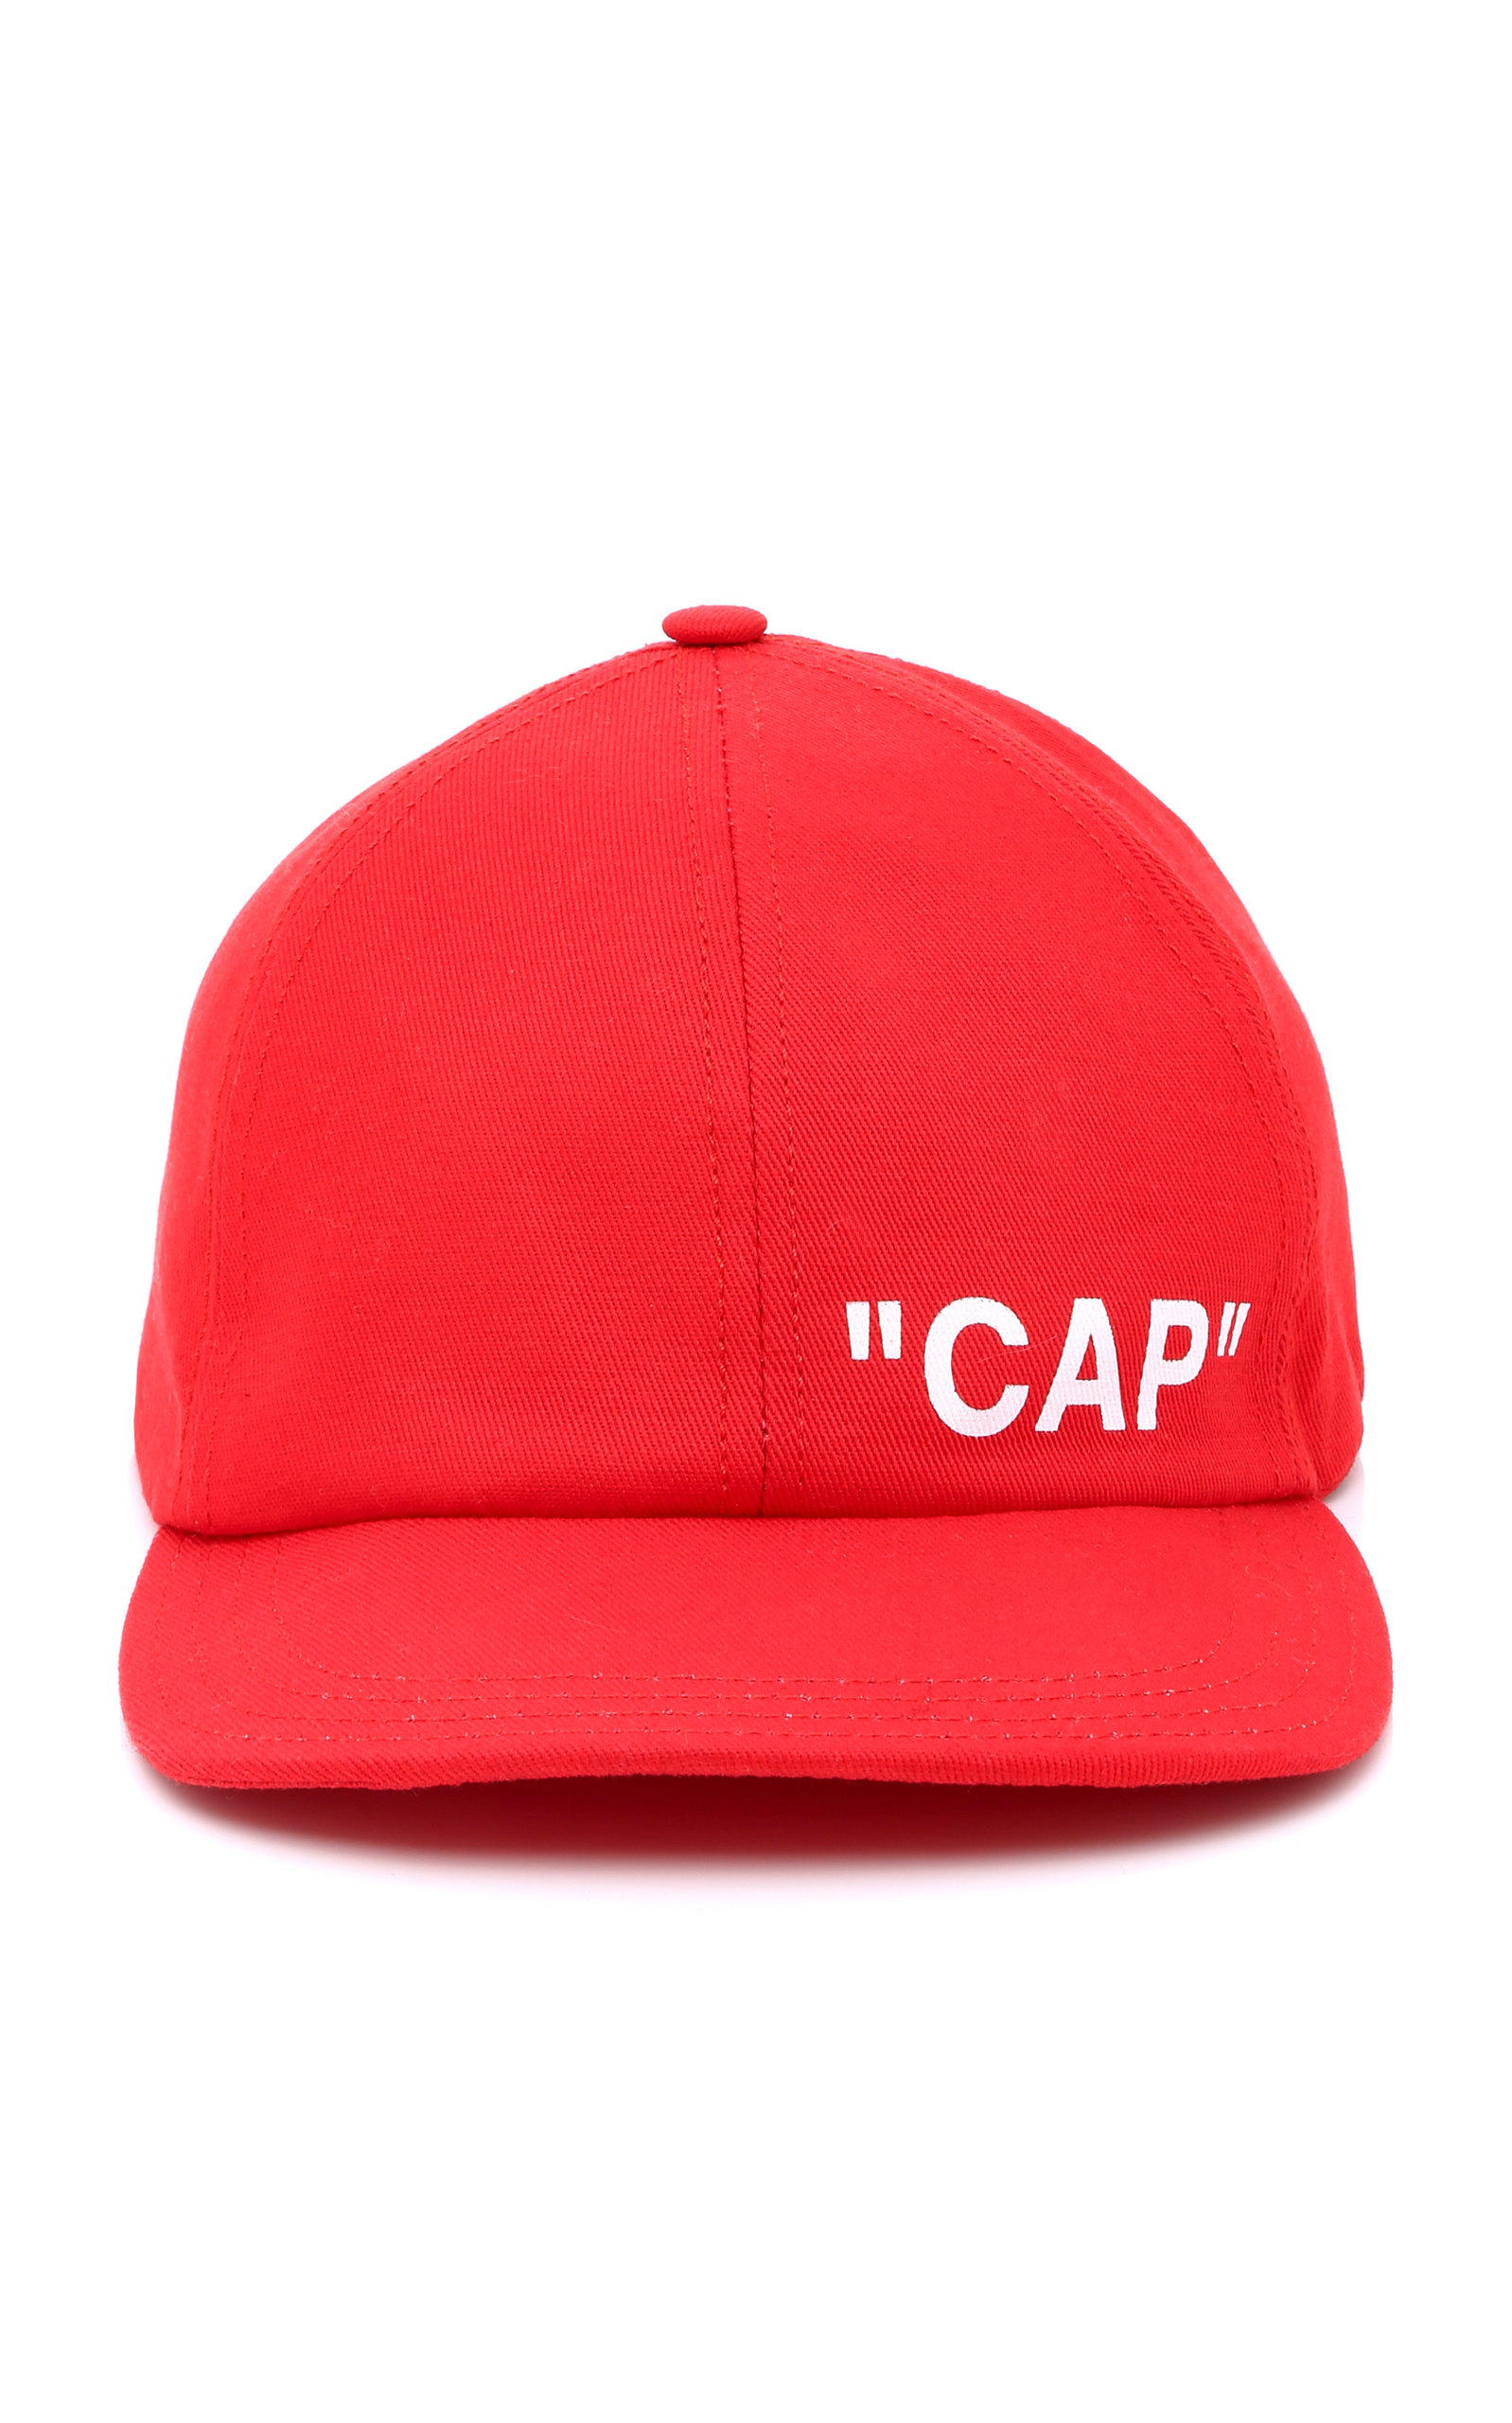 OFF-WHITE Printed Cotton-Twill Baseball Cap, Red